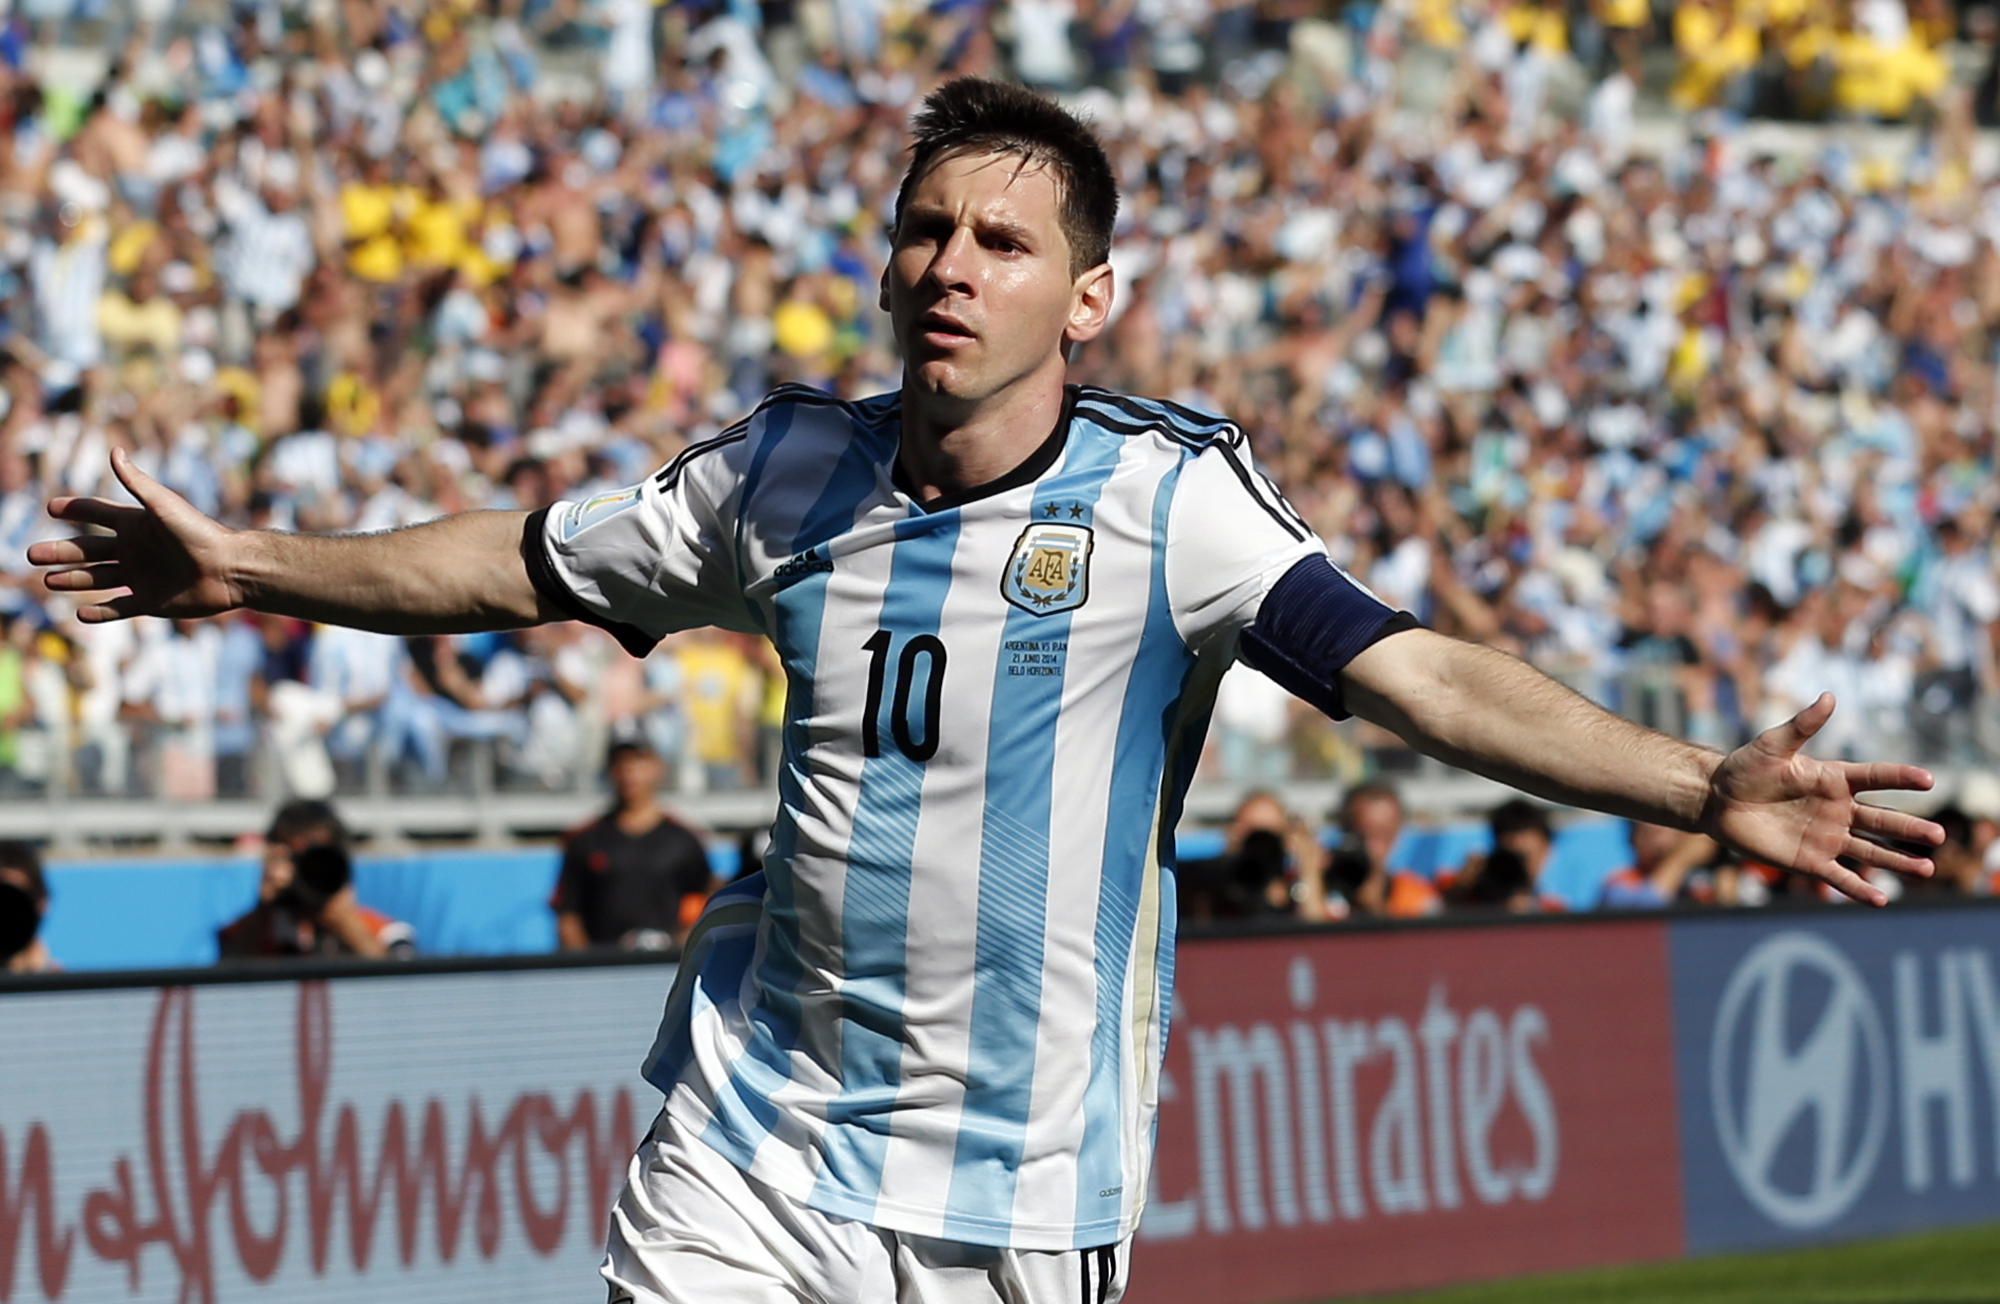 MATCH WINNER: Lionel Messi's stoppage-time strike enabled Argentina to beat Iran